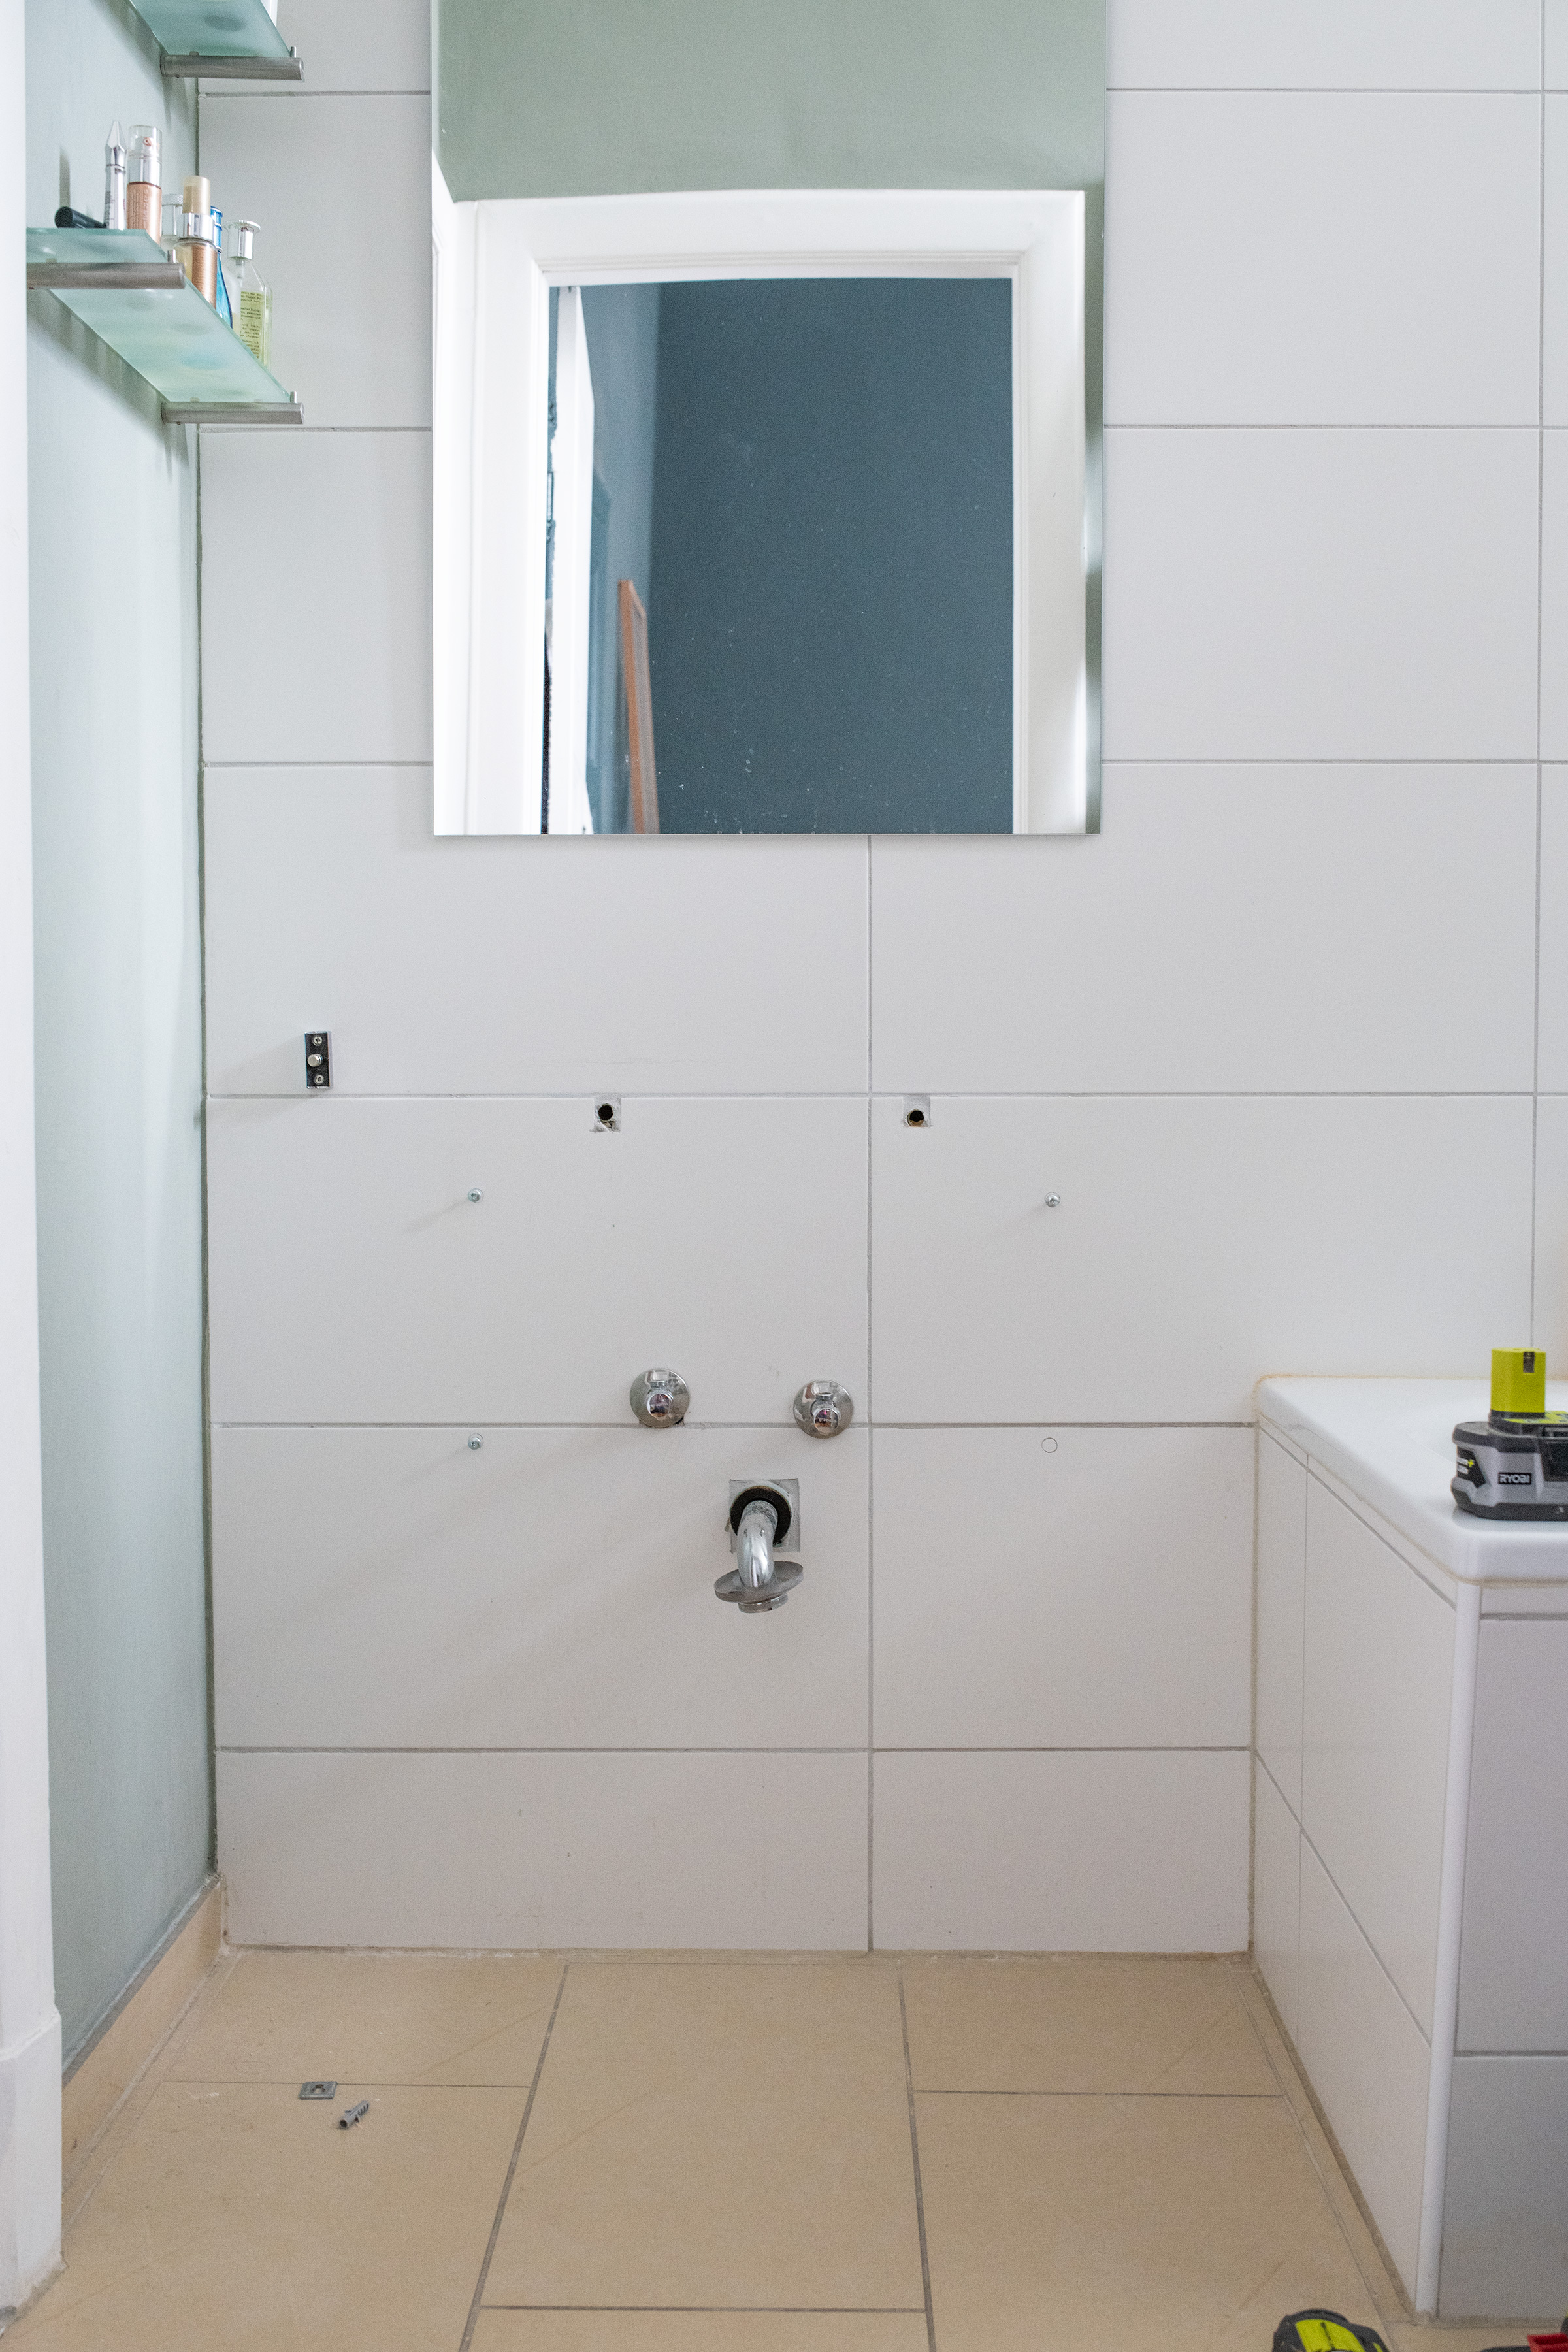 How To Install A Tap - Installing A Vanity Unit | Little House On The Corner